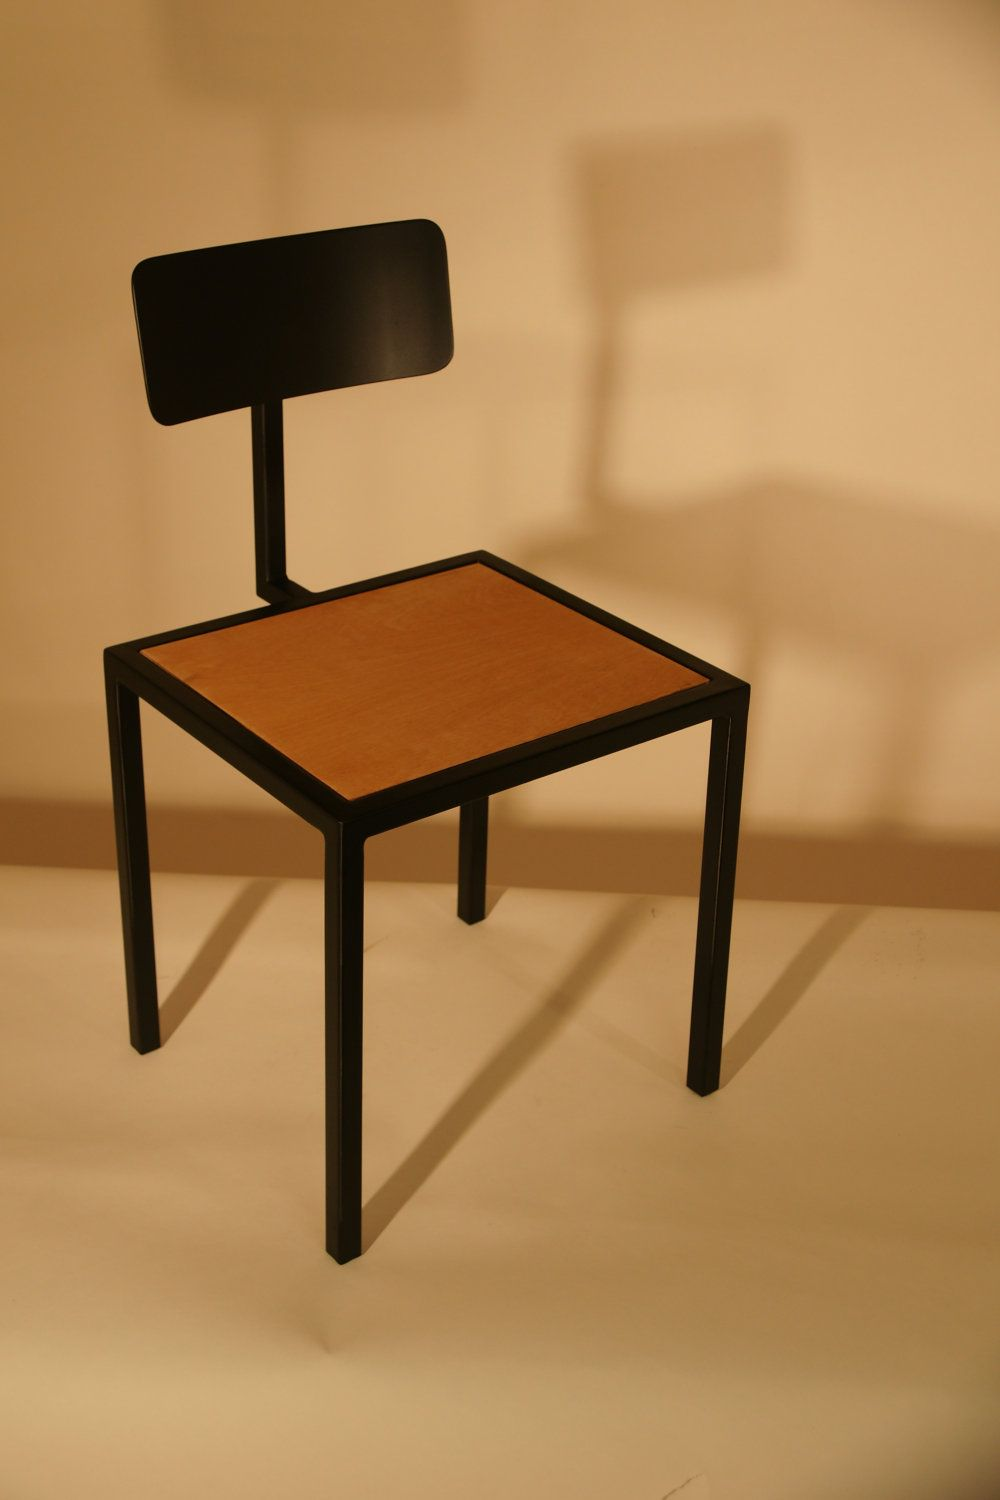 Handmade Steel and Wooden Inlay Chair available from Etsy